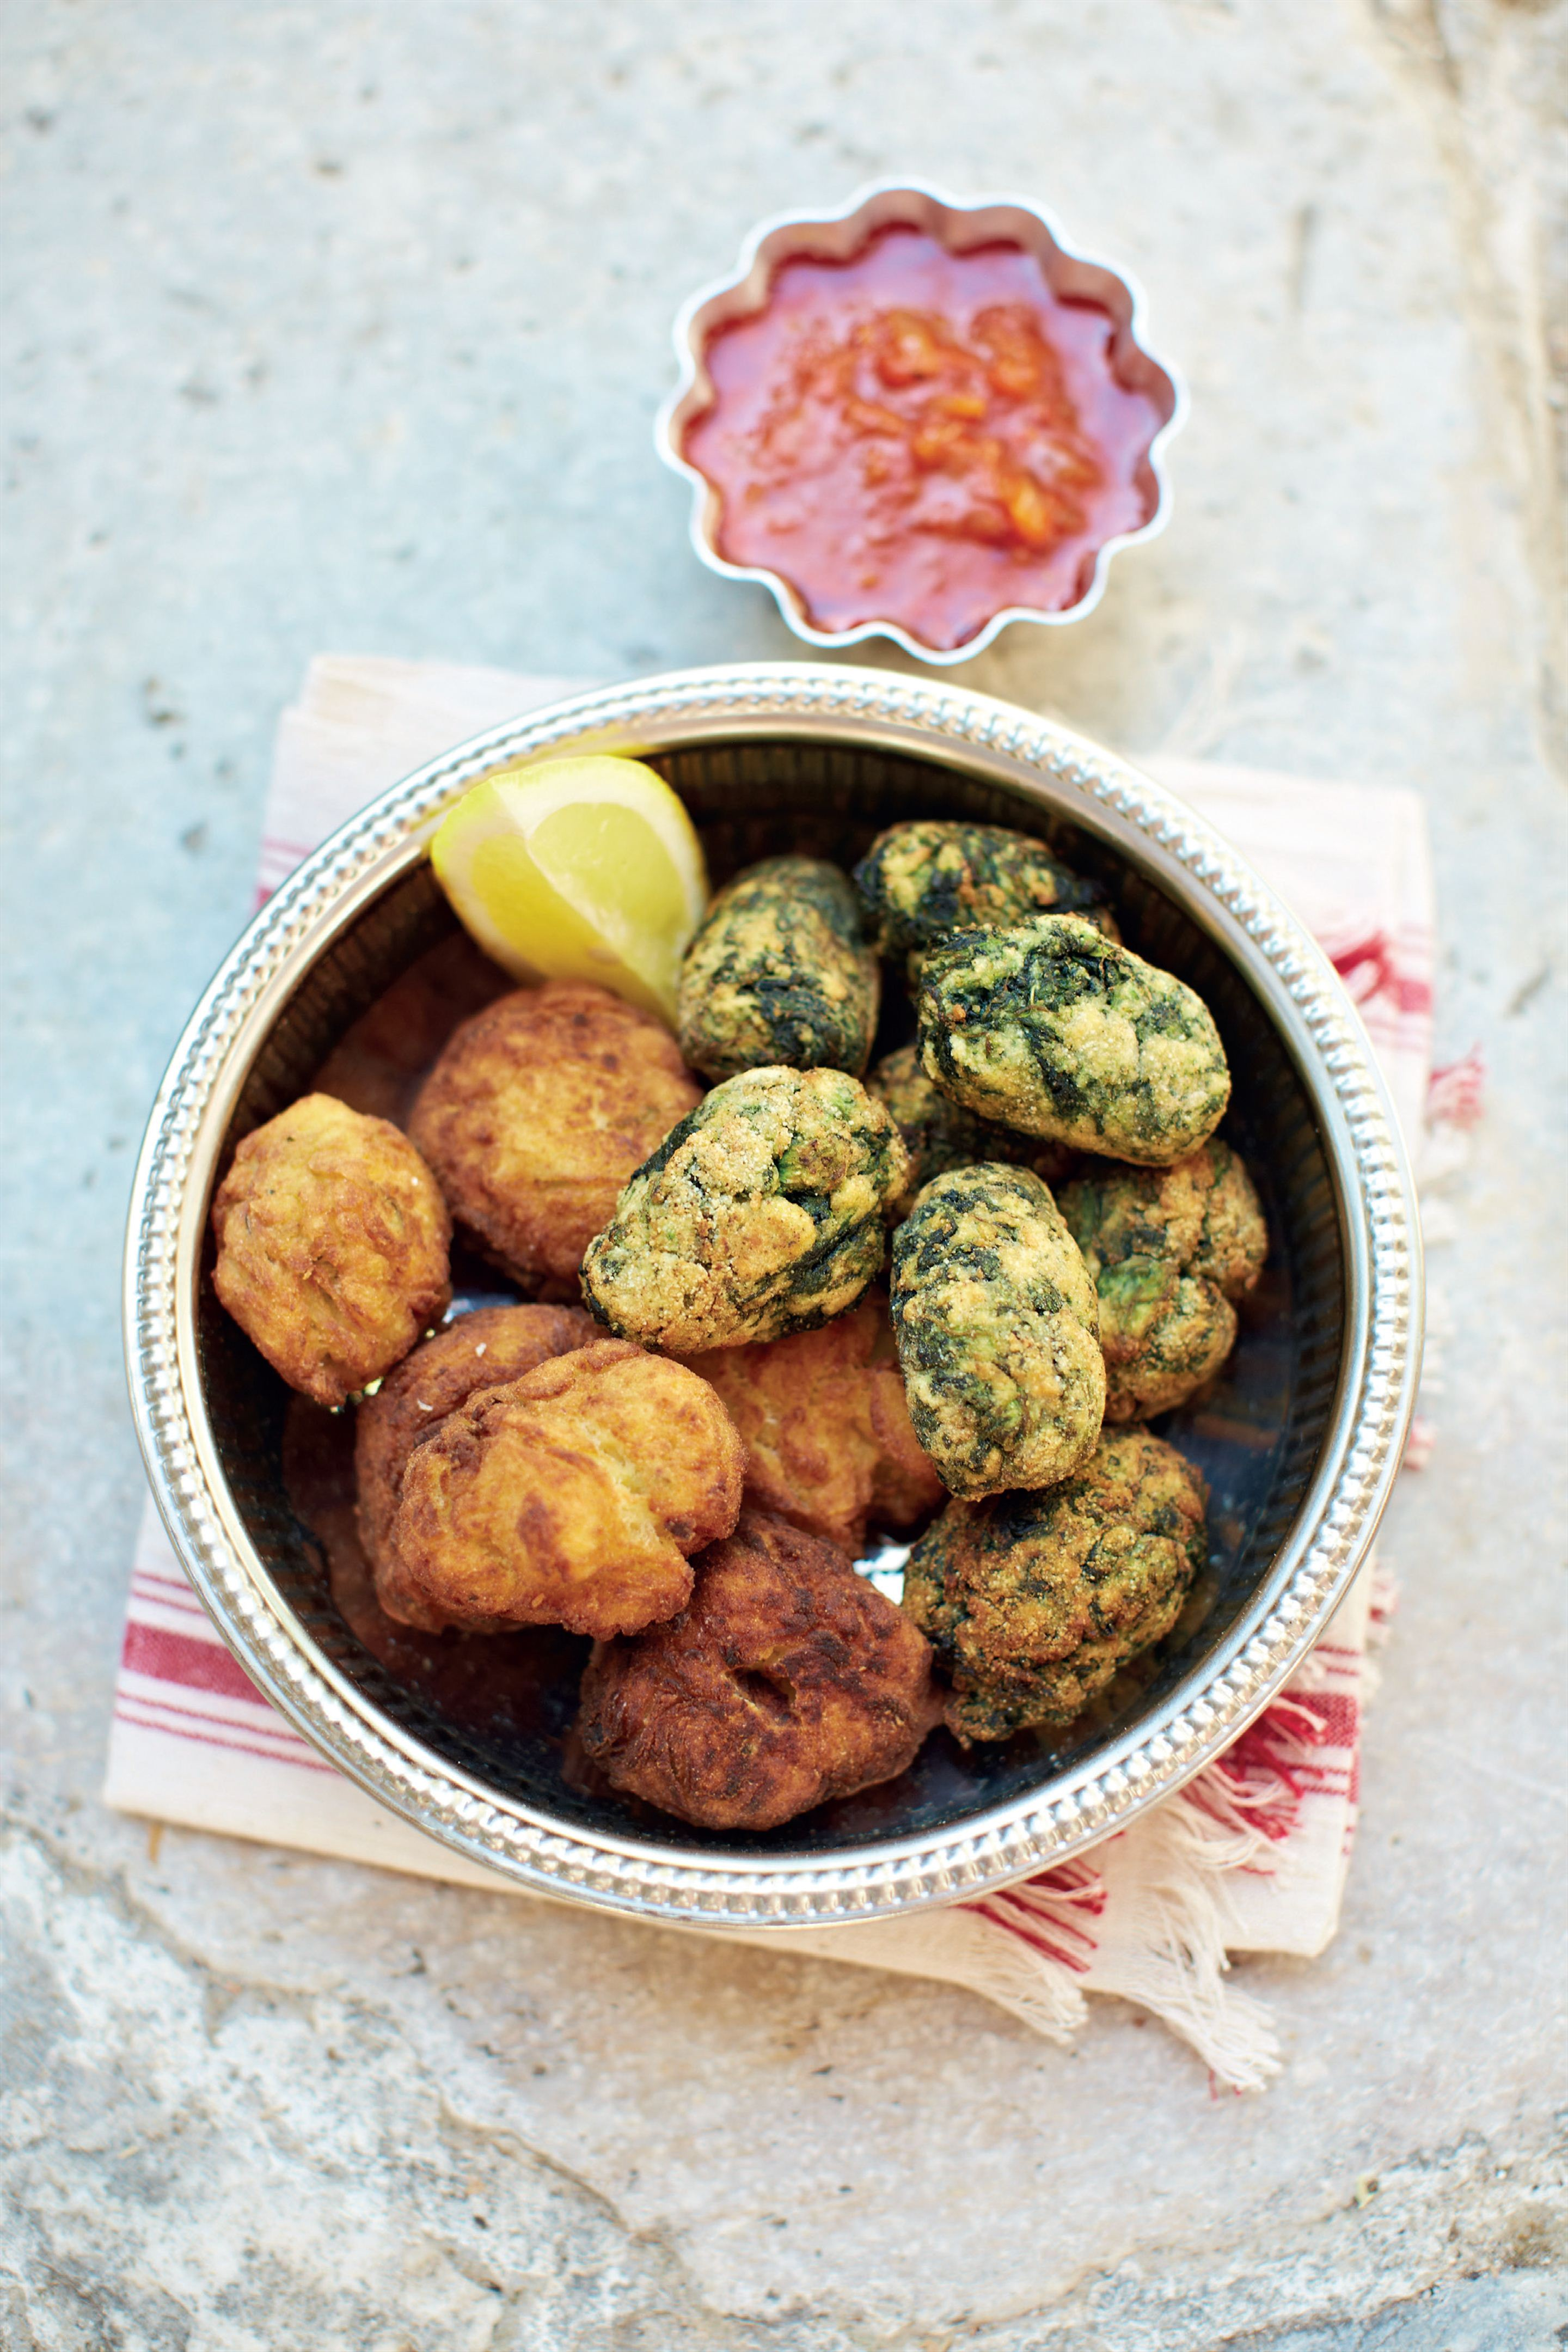 Chickpea fritters